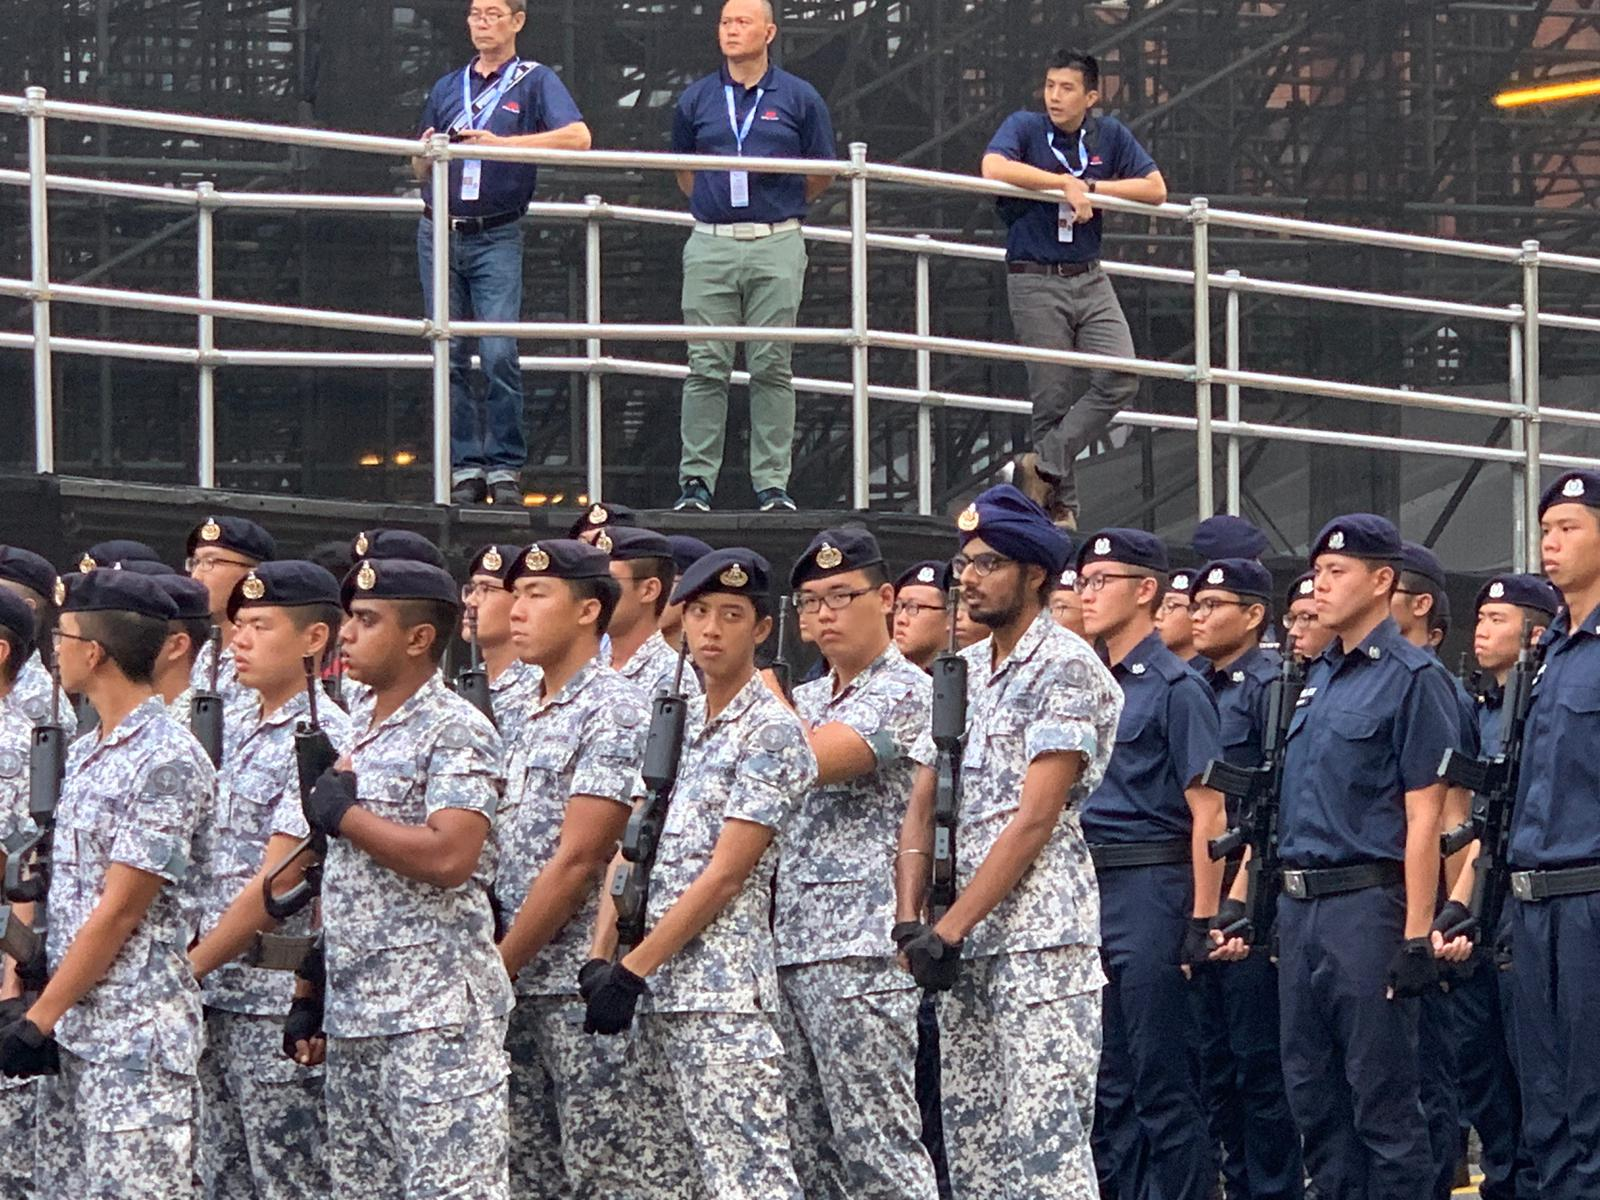 For the first time, the Singapore Armed Forces (SAF) and HomeTeam Volunteer Corps will appear as a marching contingent. Photo courtesy: Connected to India